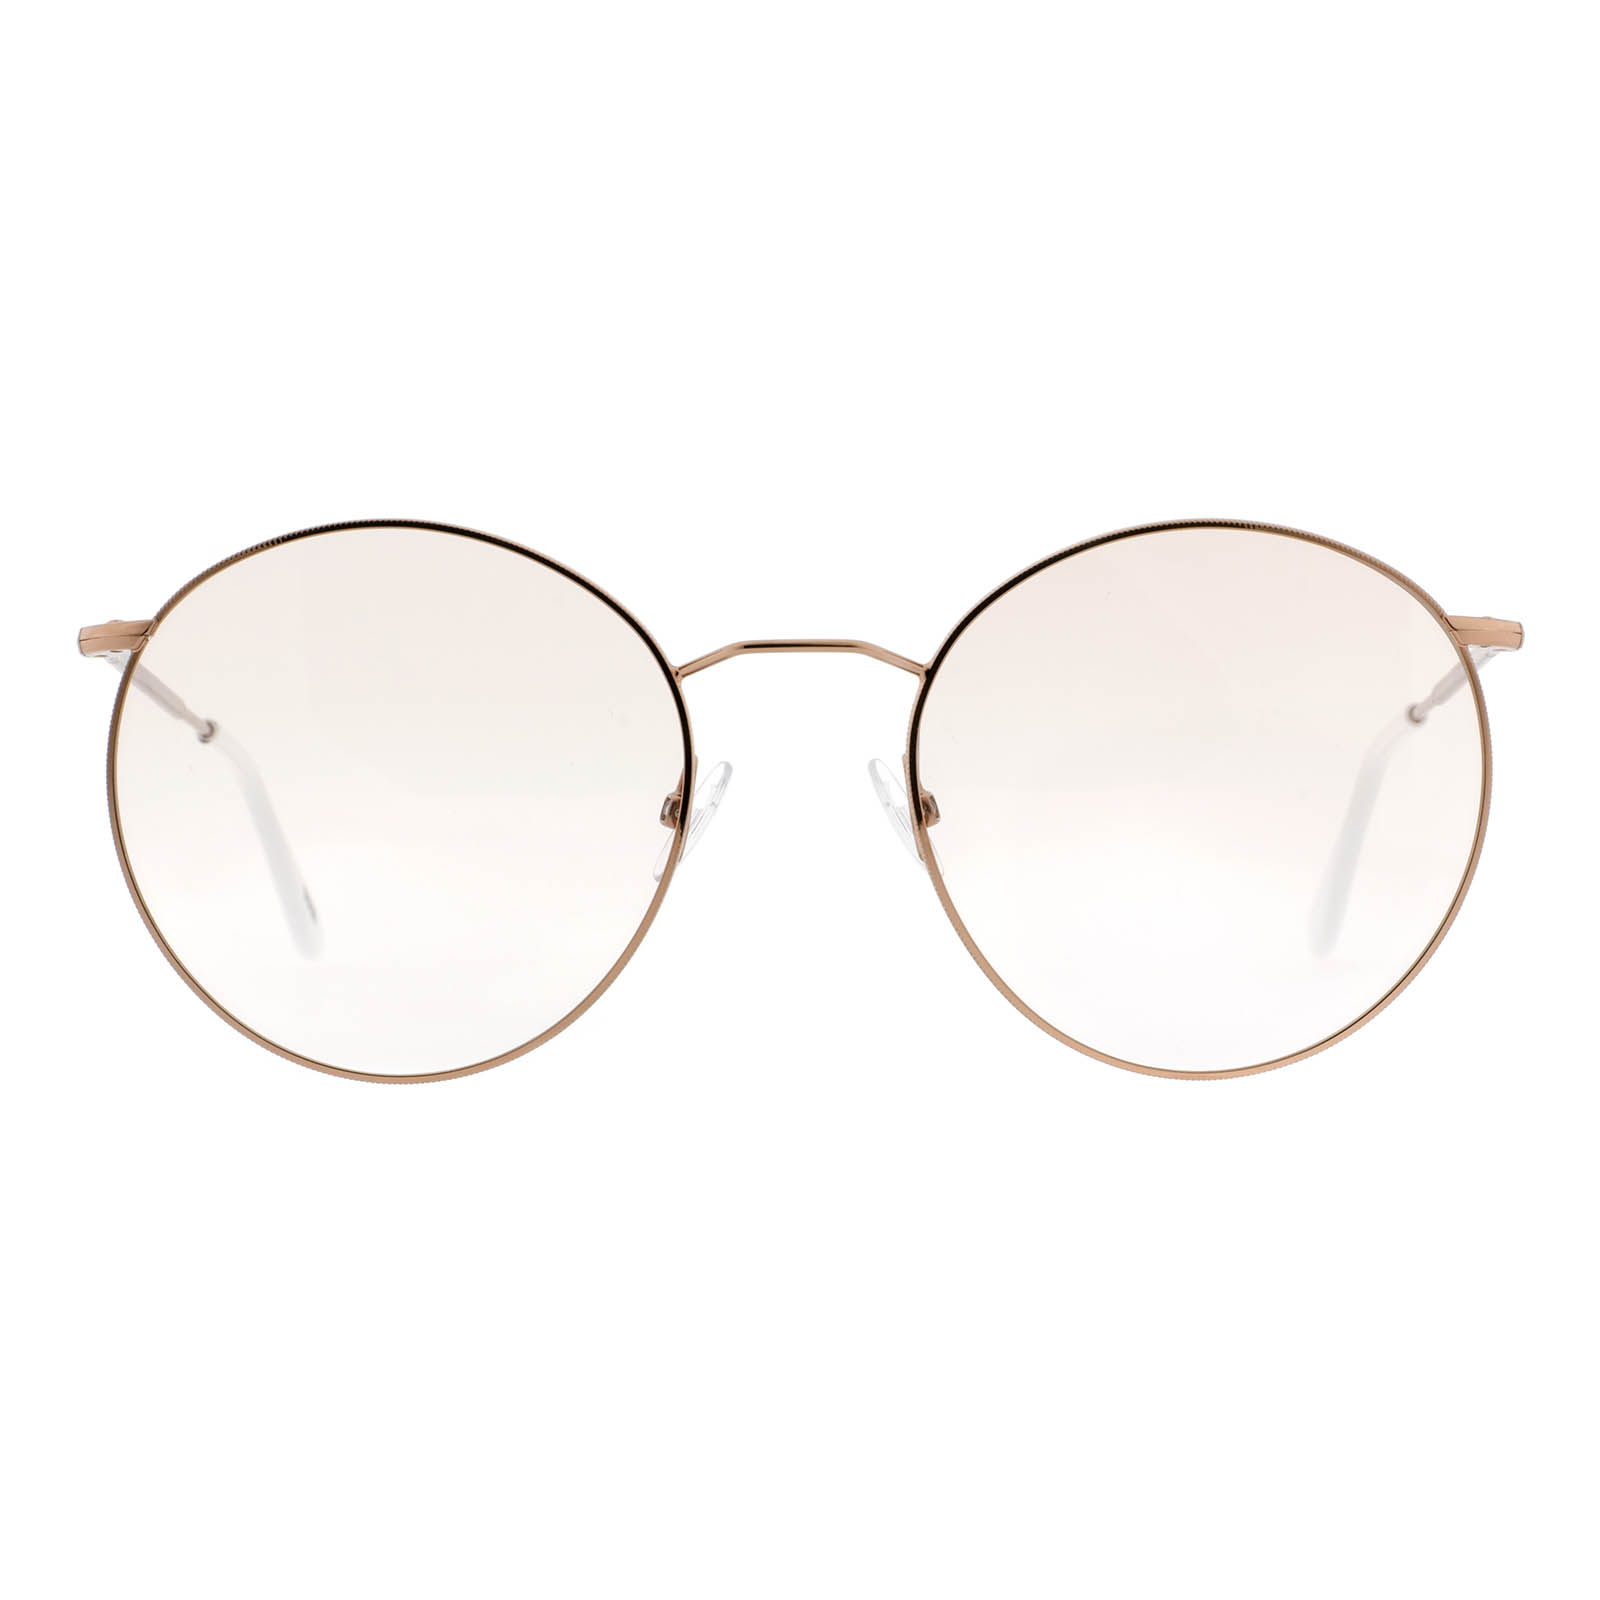 ANDY WOLF EYEWEAR_4710_C_front